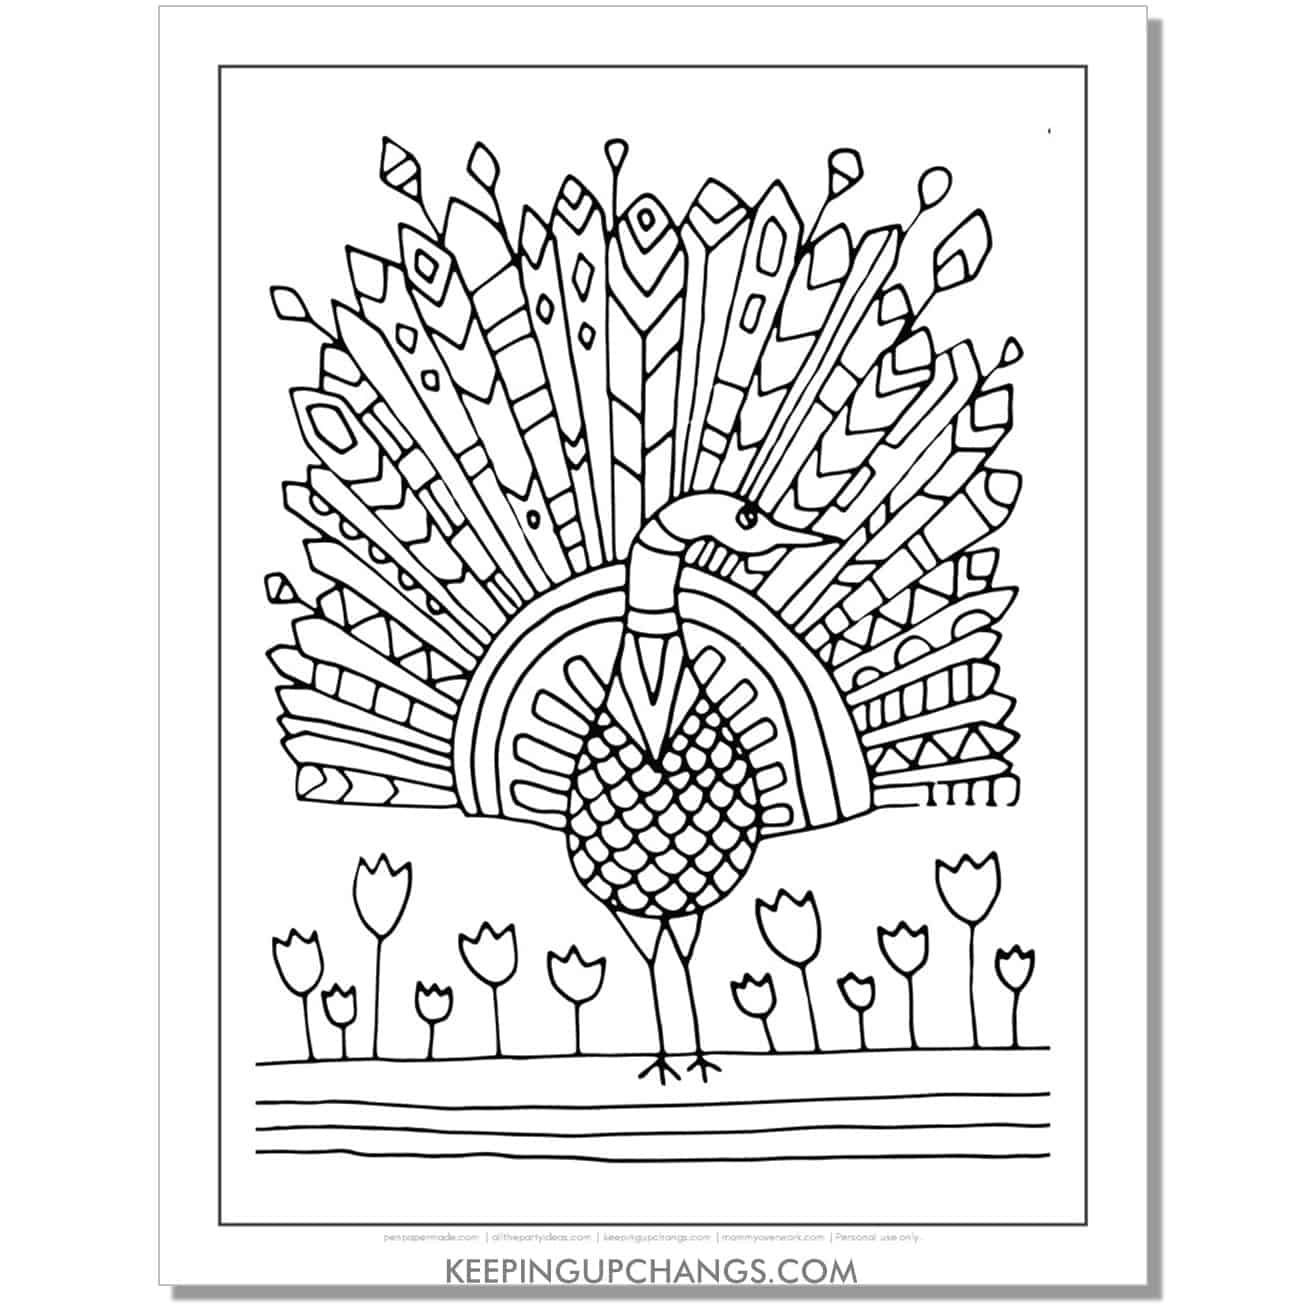 hand drawn doodle peacock coloring page.